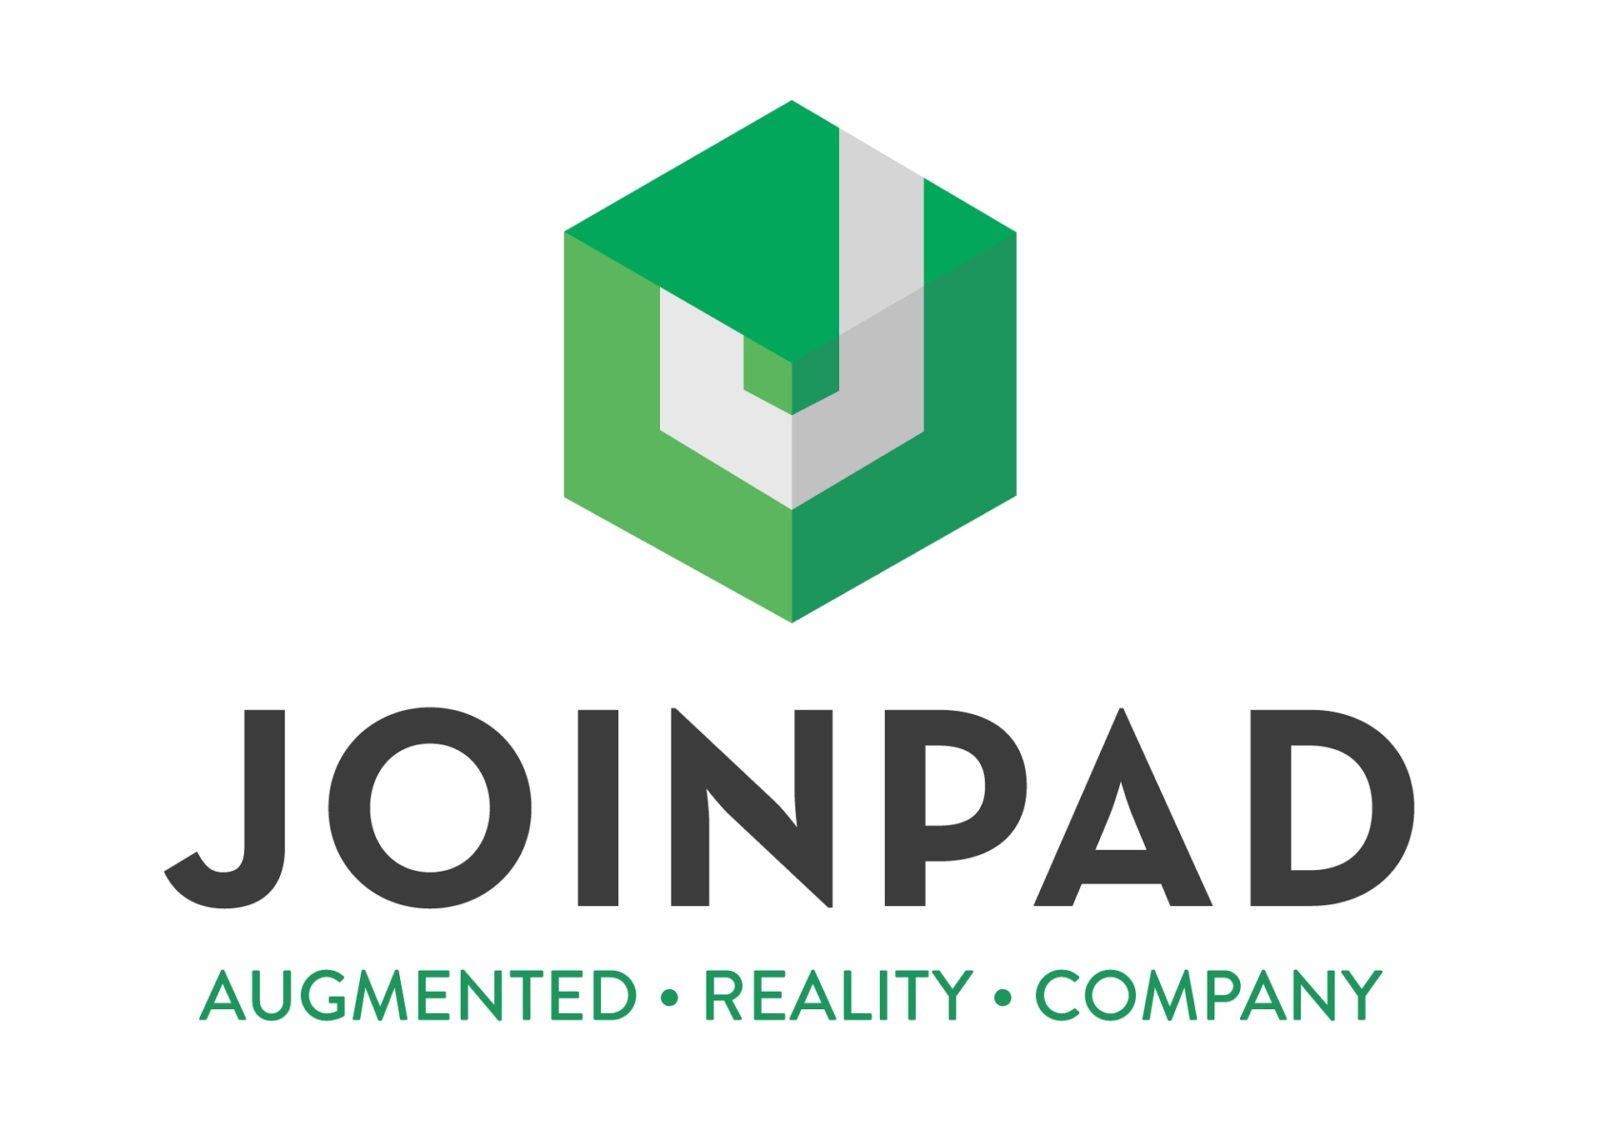 JoinPad - Augmented Reality for Enterprises